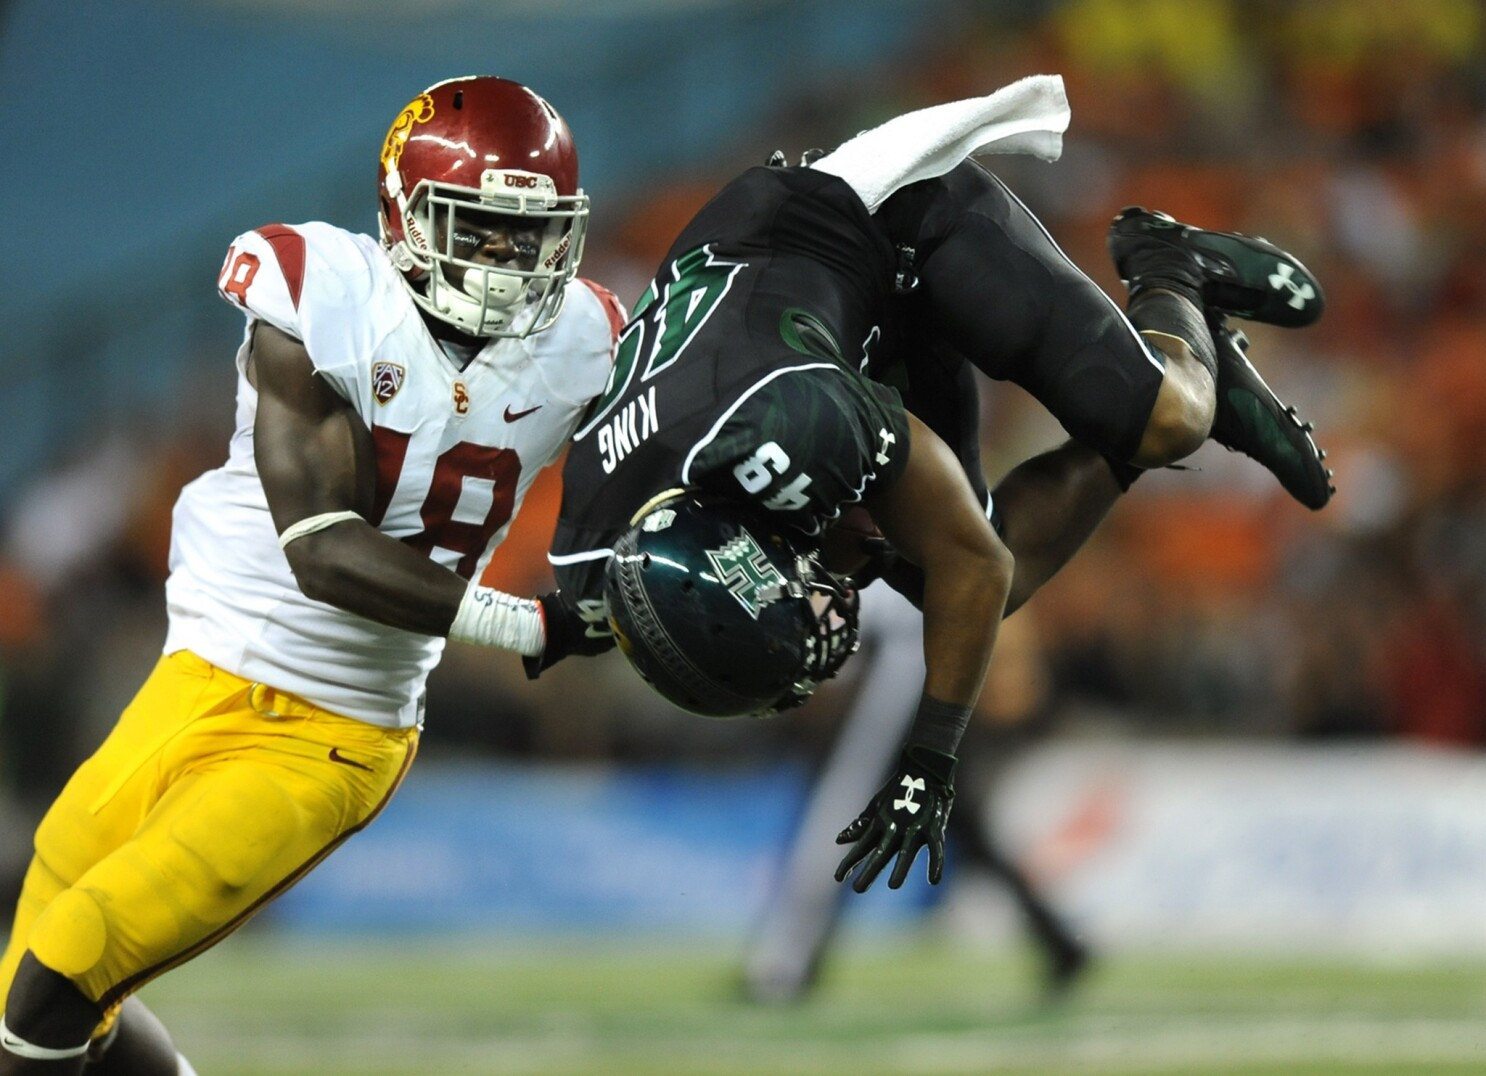 USC's Dion Bailey glad to be thinking out of the box - Los Angeles ...